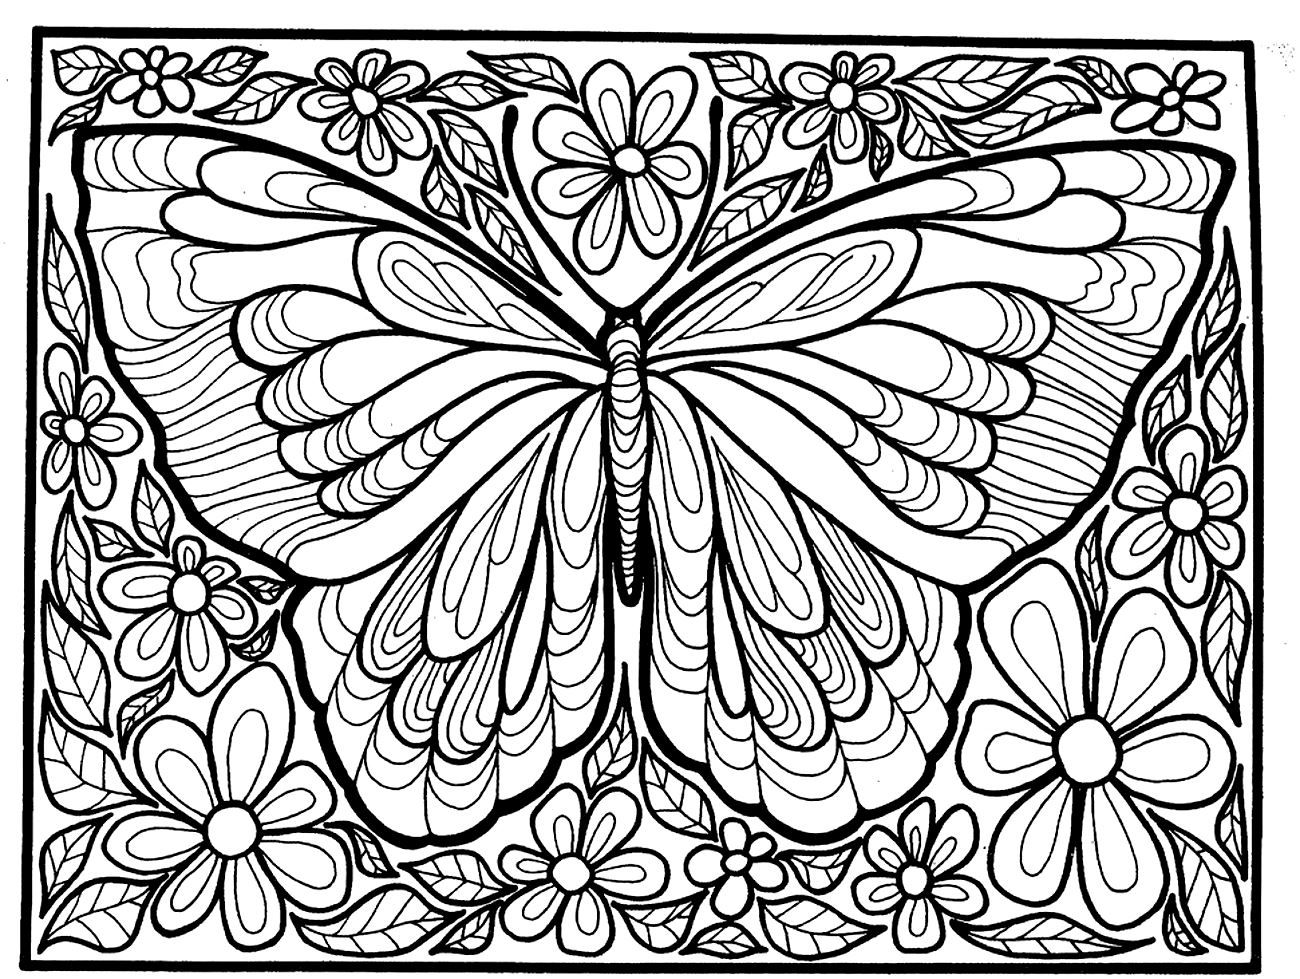 Adult Difficult Big Butterfly Coloring Pages Printable And Book To Print For Free Find More Online Kids Adults Of